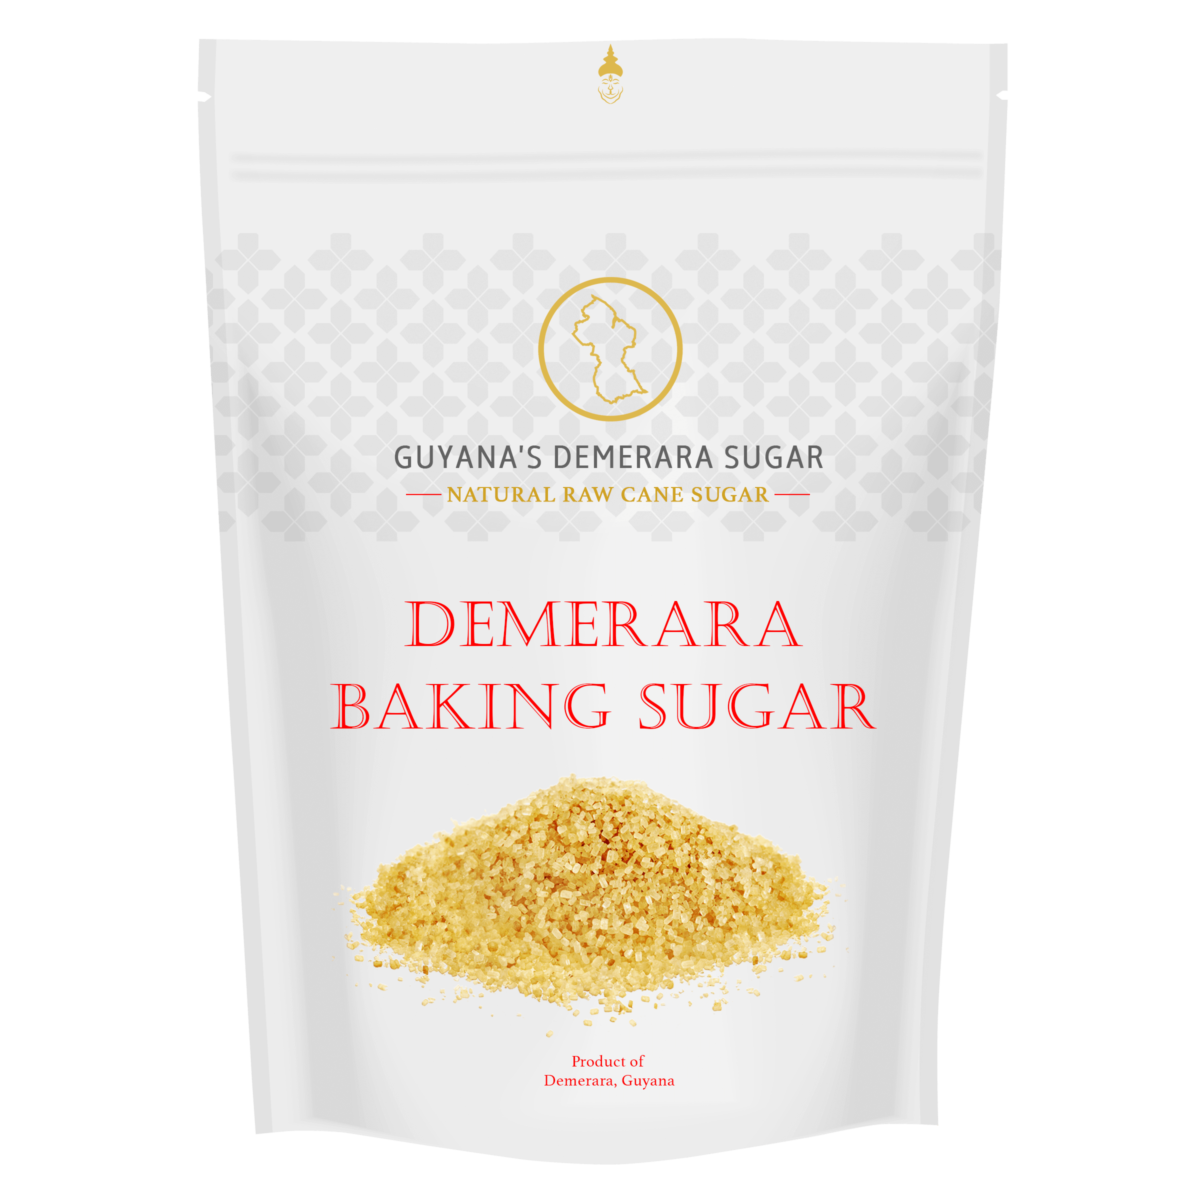 Demerara Baking Sugar